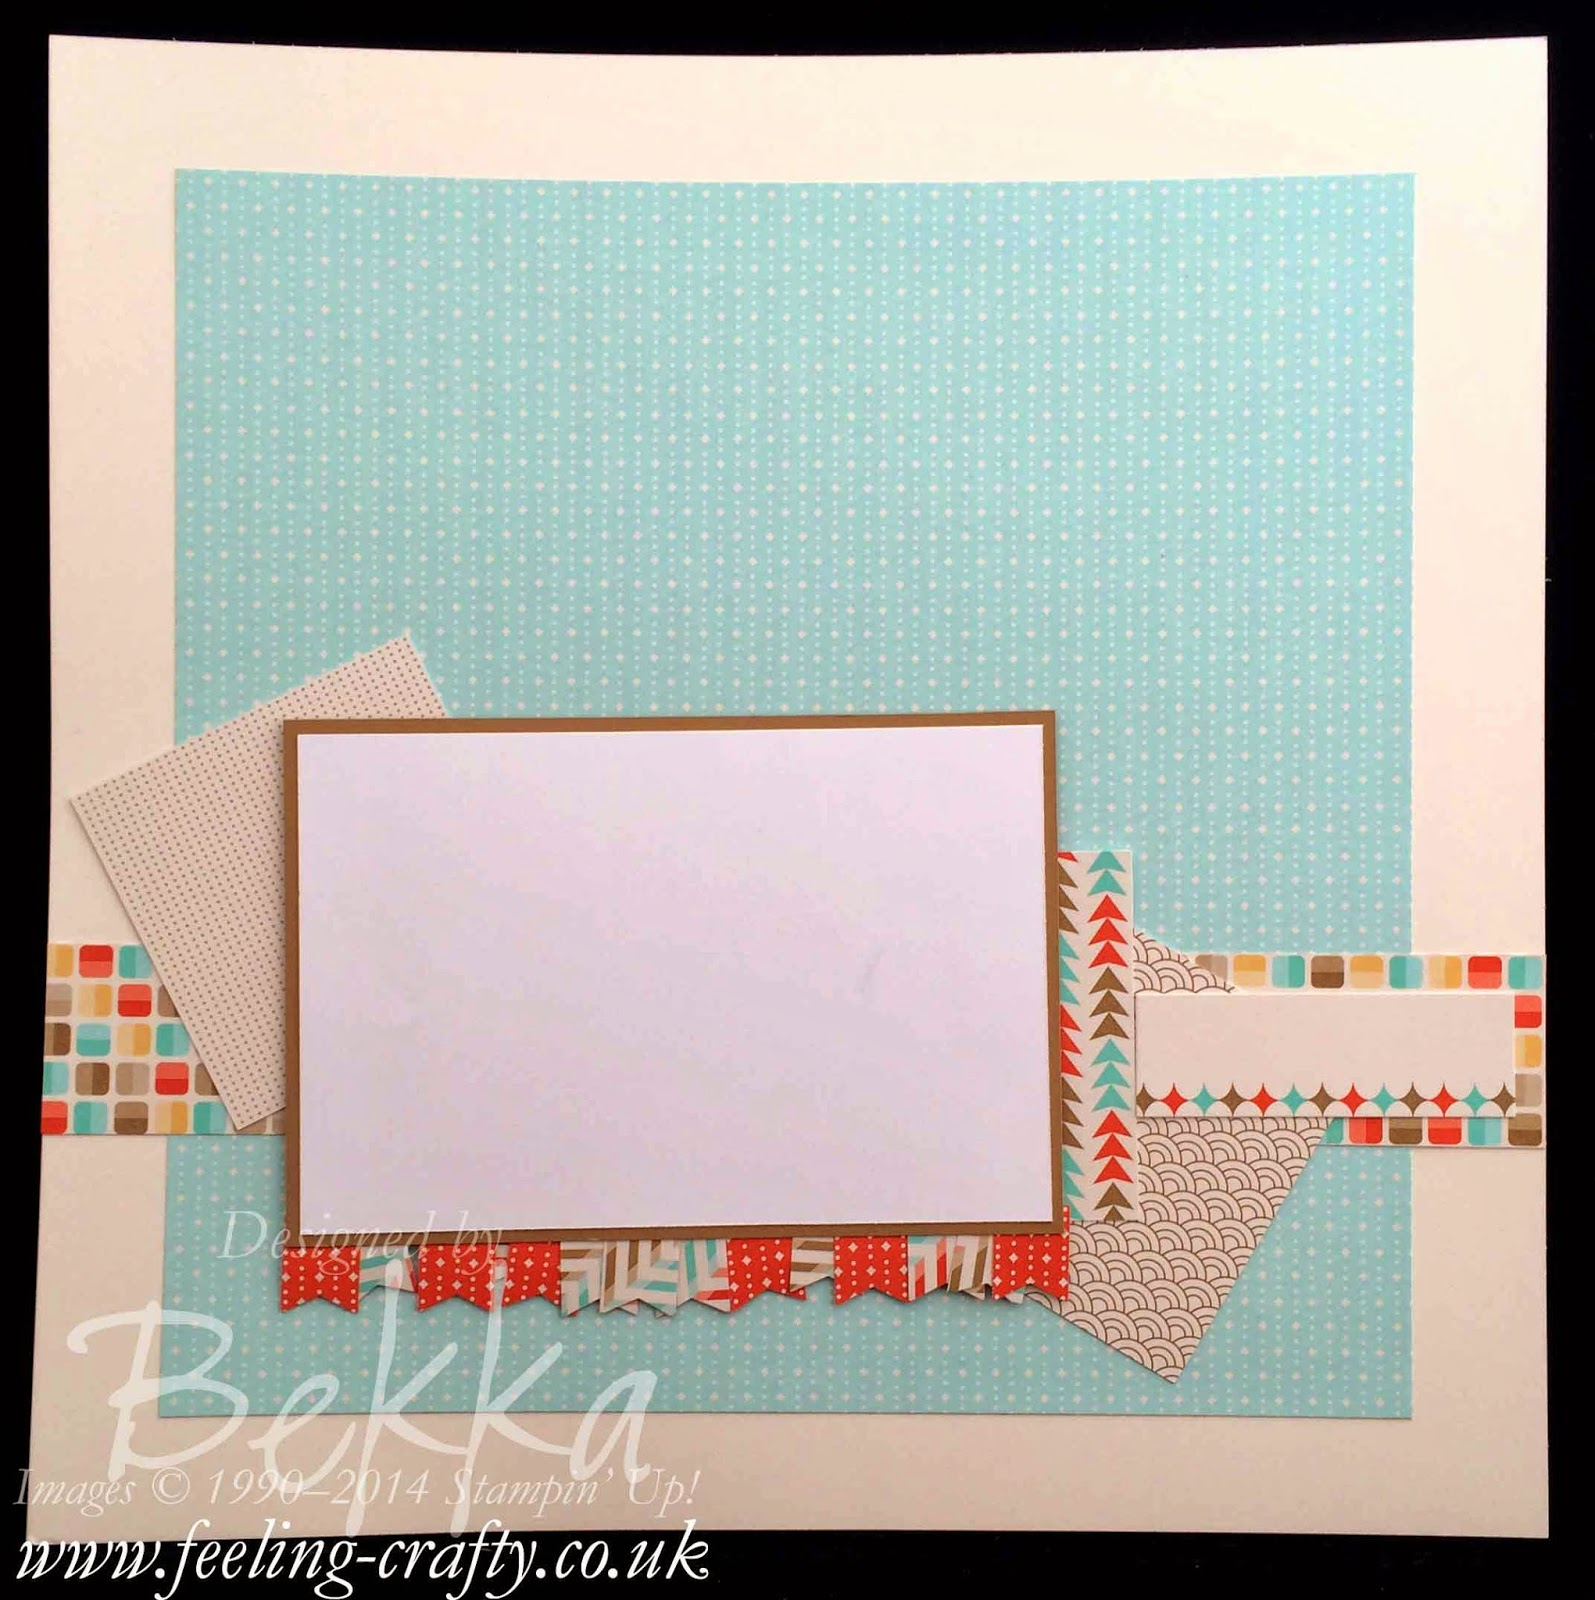 Retro Fresh Scrapbook Page Start Point - check this blog every Saturday for more Scrapbook Ideas